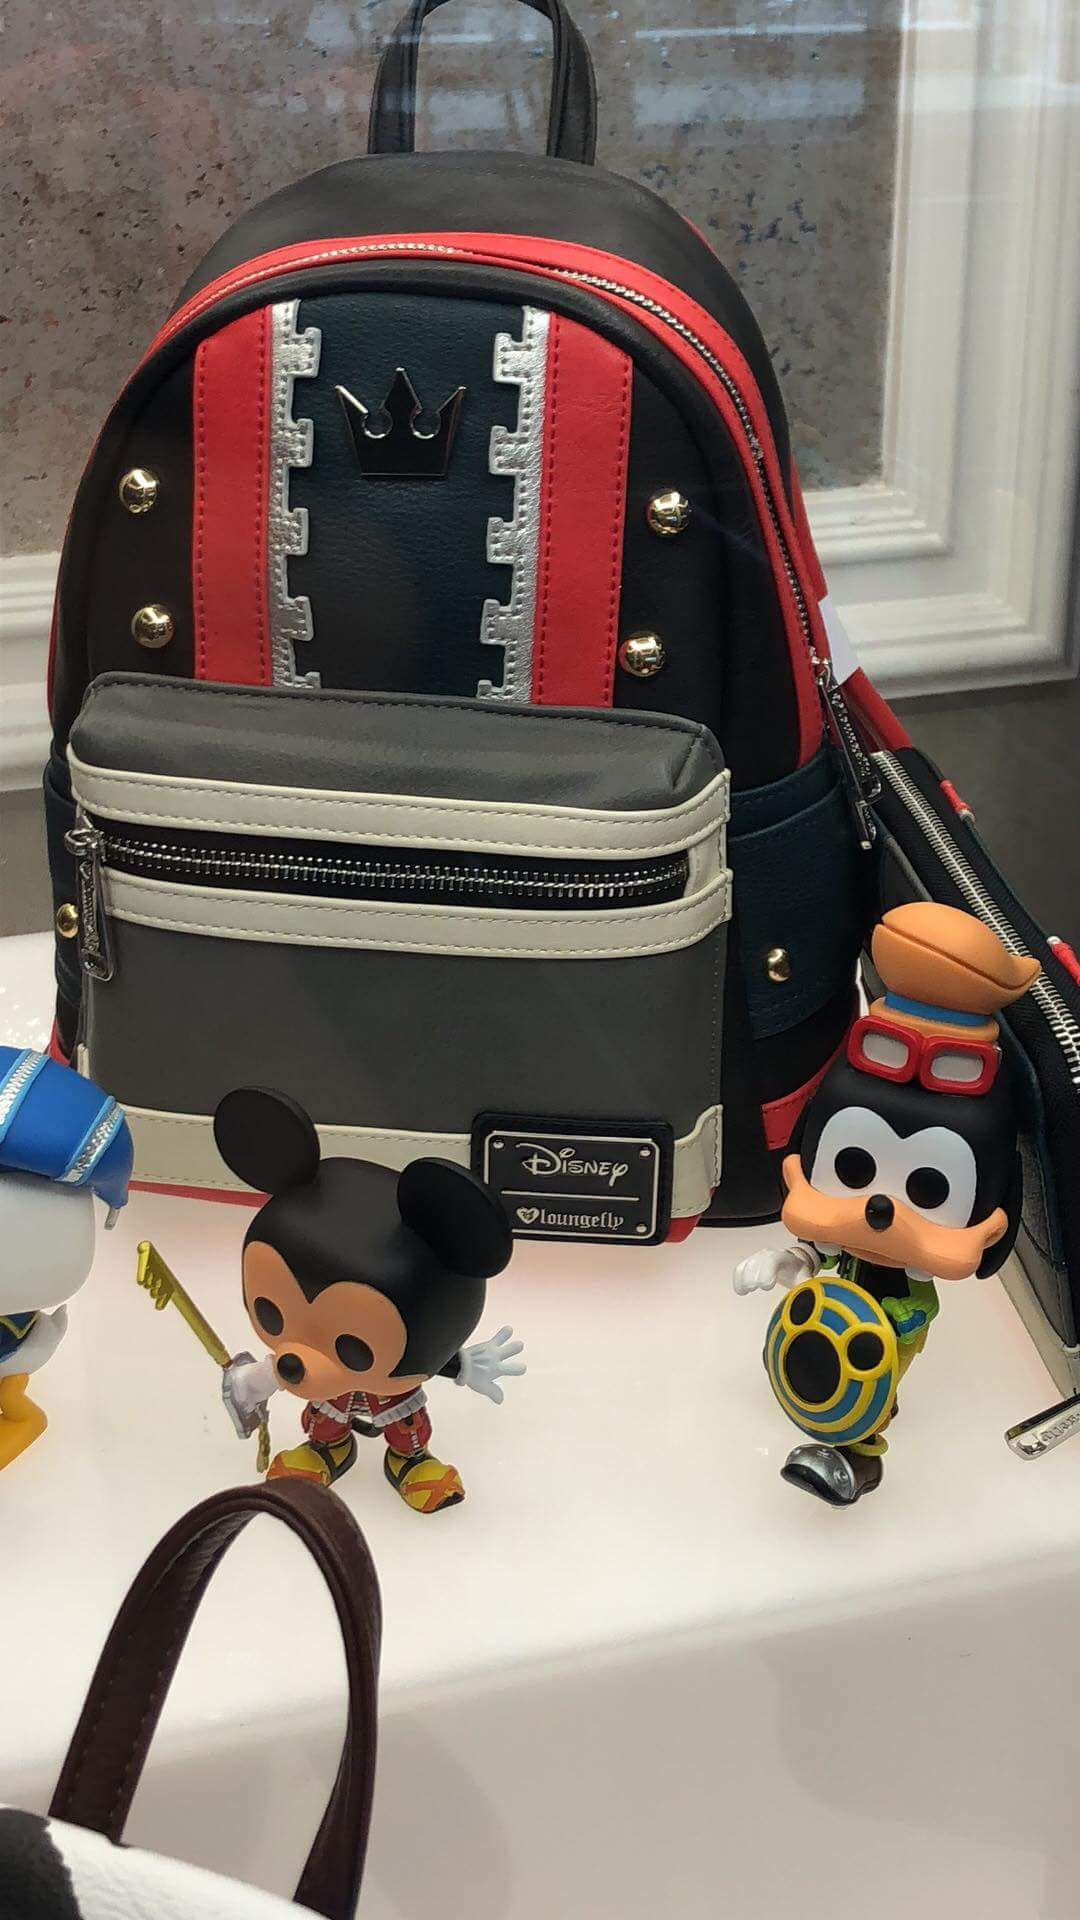 c797620d38 New Disney and Marvel Loungefly Designs Revealed at Her Universe Fashion  Show!